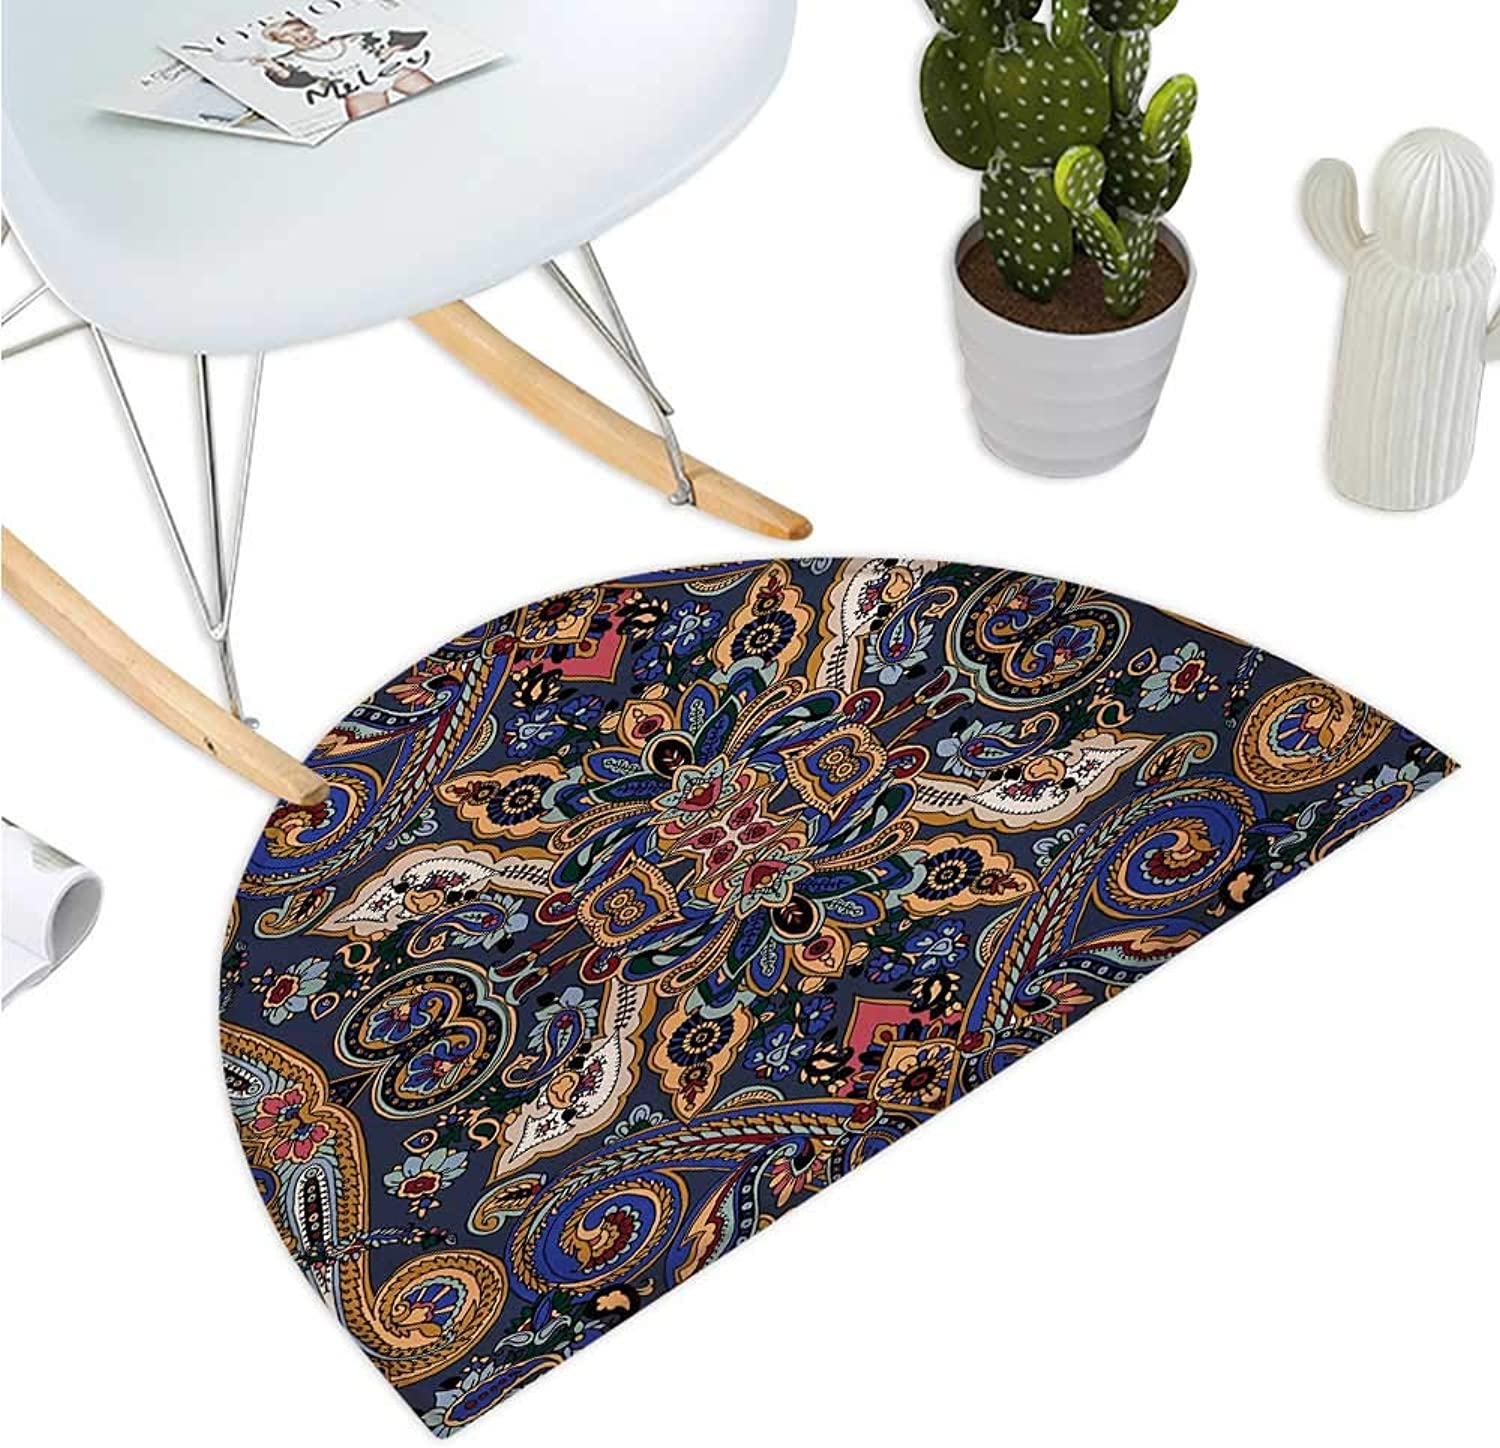 Paisley Half Round Door mats Historical Mgoldccan Florets with Slavic Effects Heritage Design Entry Door Mat H 35.4  xD 53.1  Royal bluee and Sand Brown